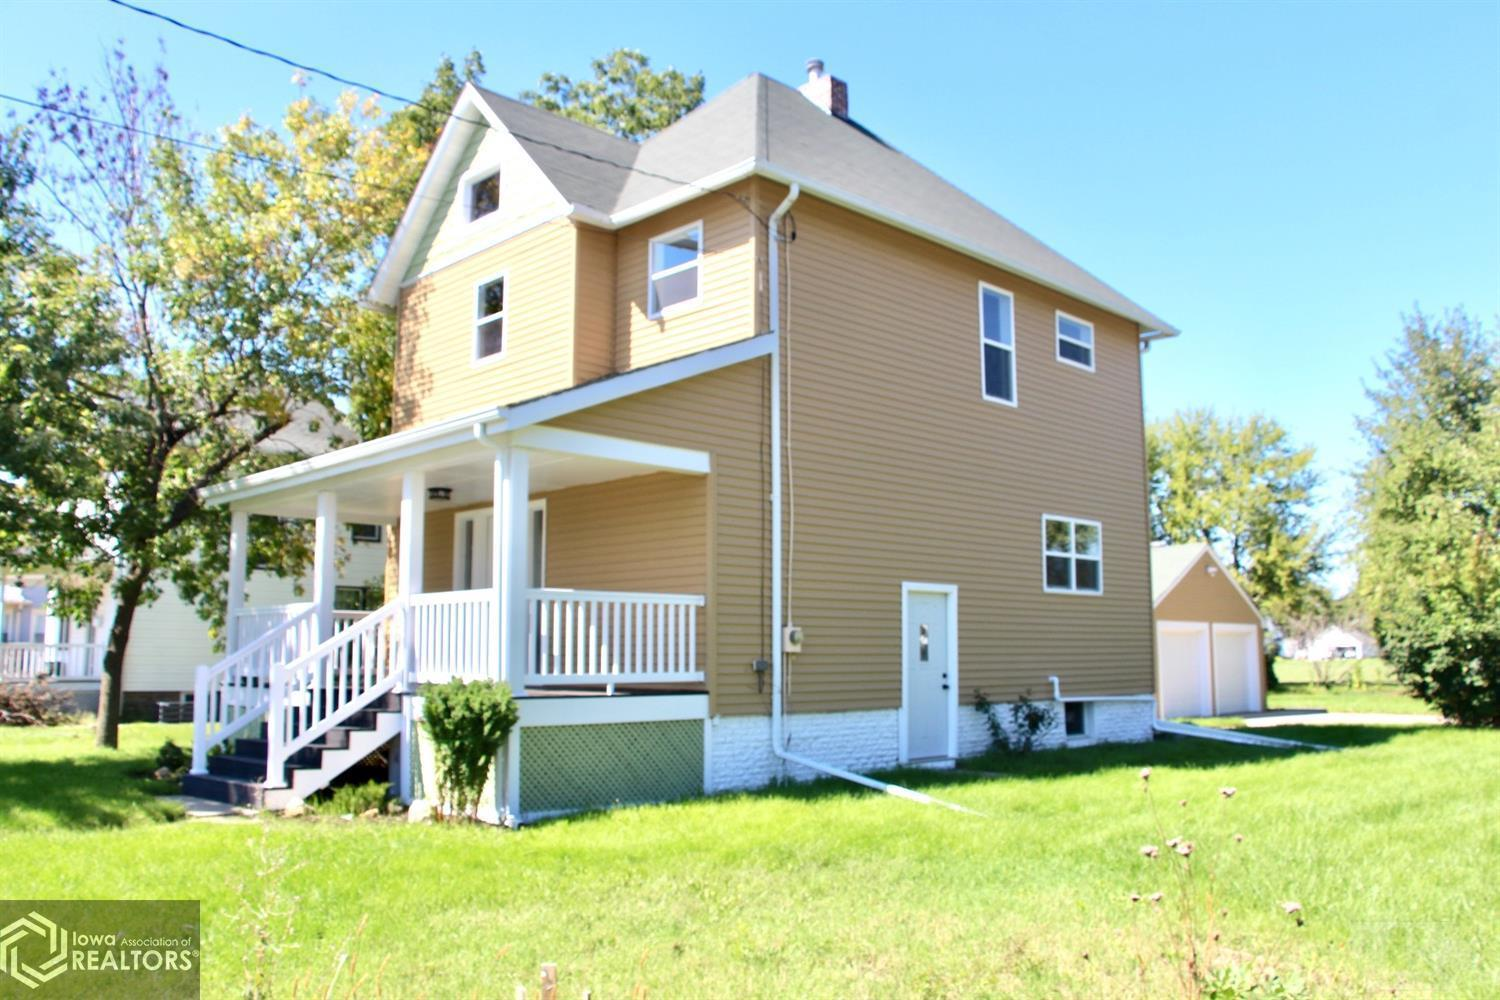 1839 6th, Grinnell, Iowa 50112, 3 Bedrooms Bedrooms, ,1 BathroomBathrooms,Single Family,For Sale,6th,6011862